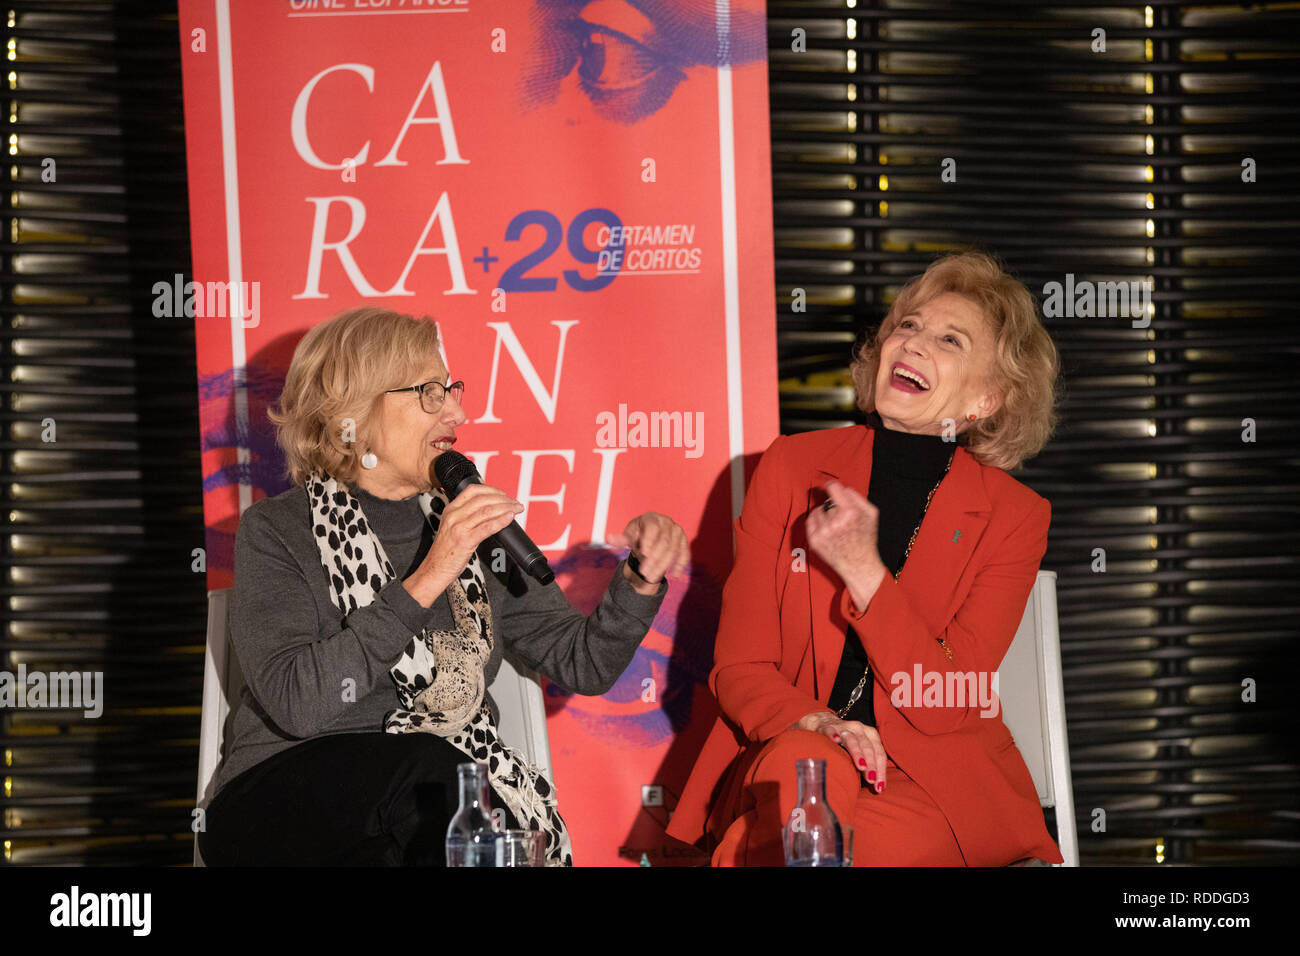 Manuela Carmena seen speaking with Marisa Paredes during the event. The Carabanchel Film Week has become one of the longest-running exhibitions in Madrid and has made it consolidate as the prelude to the Goya Awards. - Stock Image